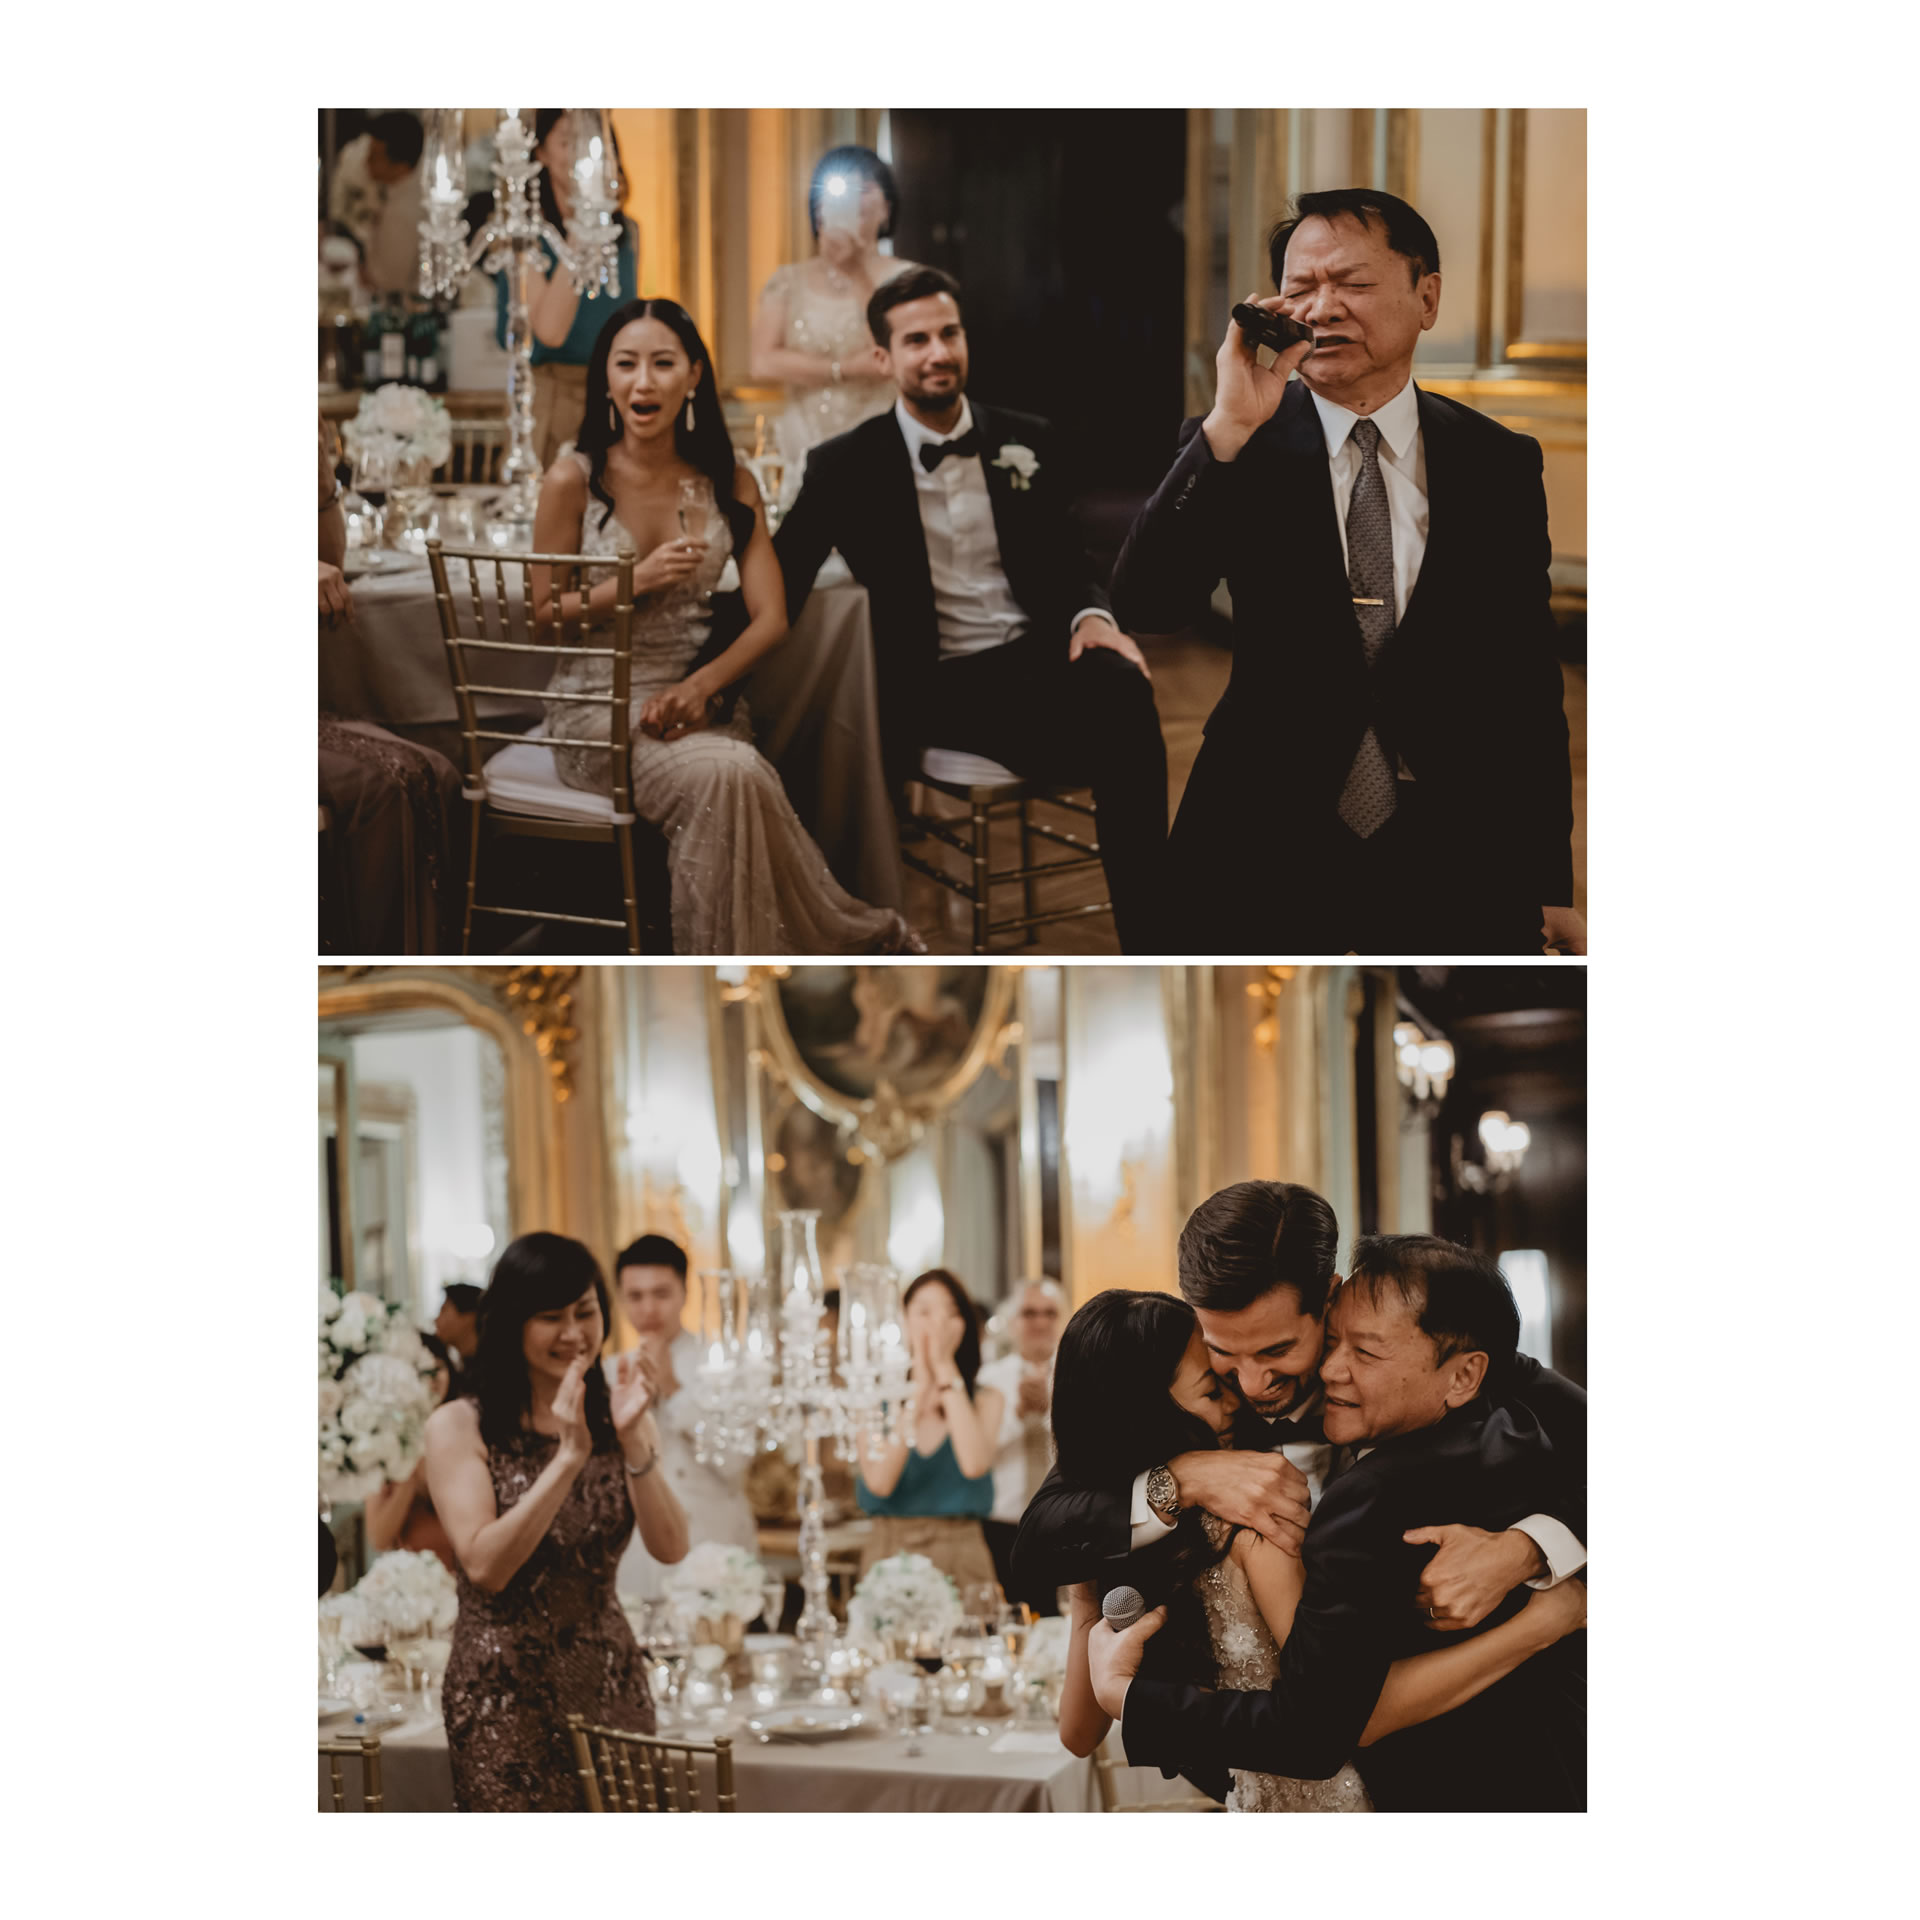 Luxury wedding in Florence (with a chinese tea ceremony) - 43 :: Luxury wedding in Florence (with a chinese tea ceremony) :: Luxury wedding photography - 42 :: Luxury wedding in Florence (with a chinese tea ceremony) - 43